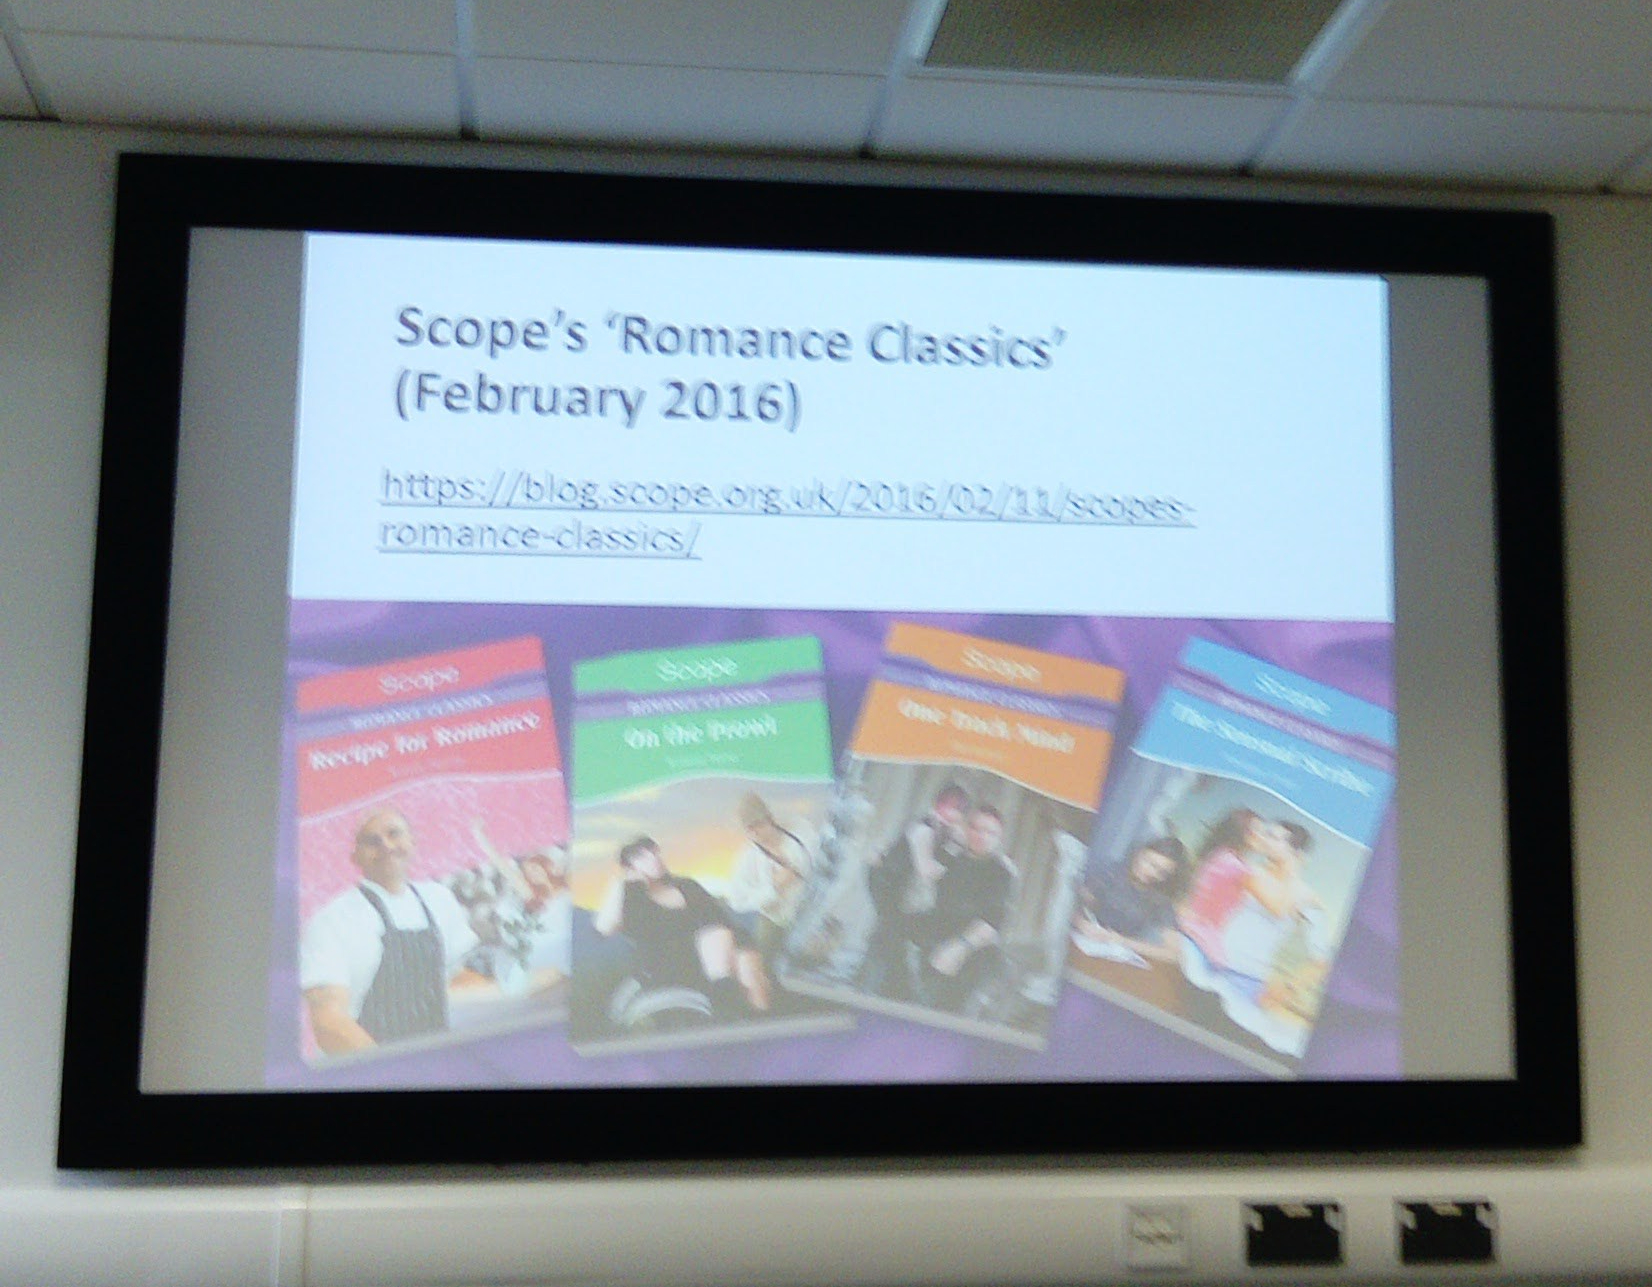 Covers from Scope's Romance Classics (2016)